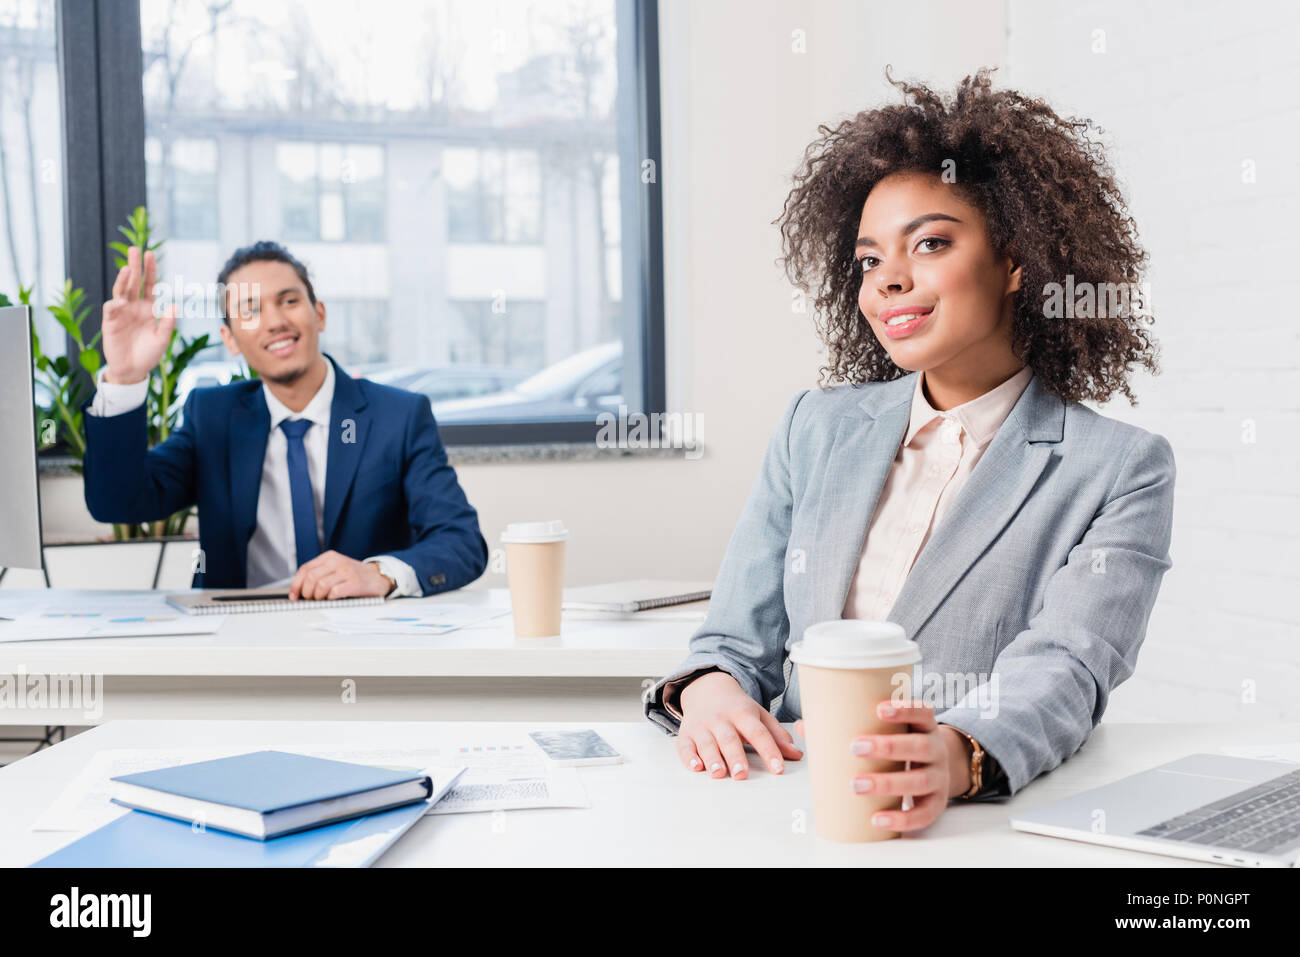 Businessman greeting someone by businesswoman holding coffee cup in office - Stock Image